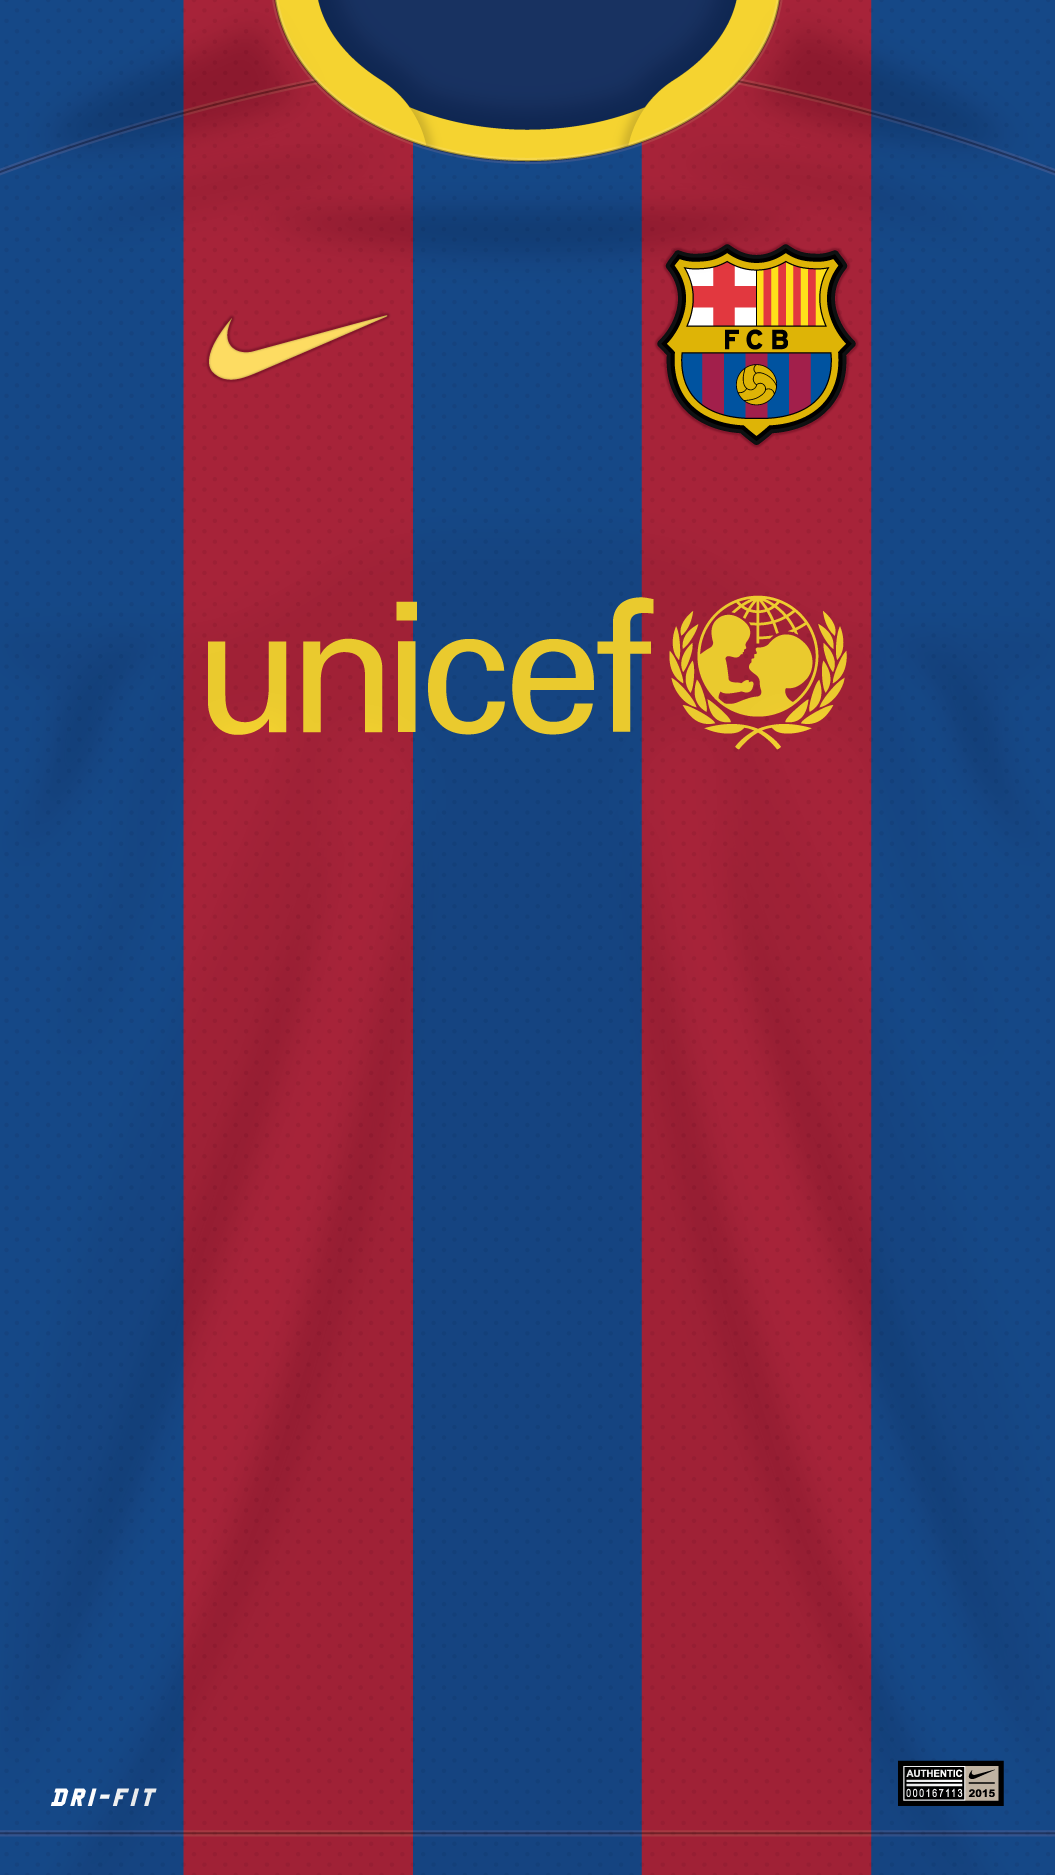 Messi Hd Wallpapers For Iphone 6 La Liga Kit Mobile Wallpapers Footy Headlines